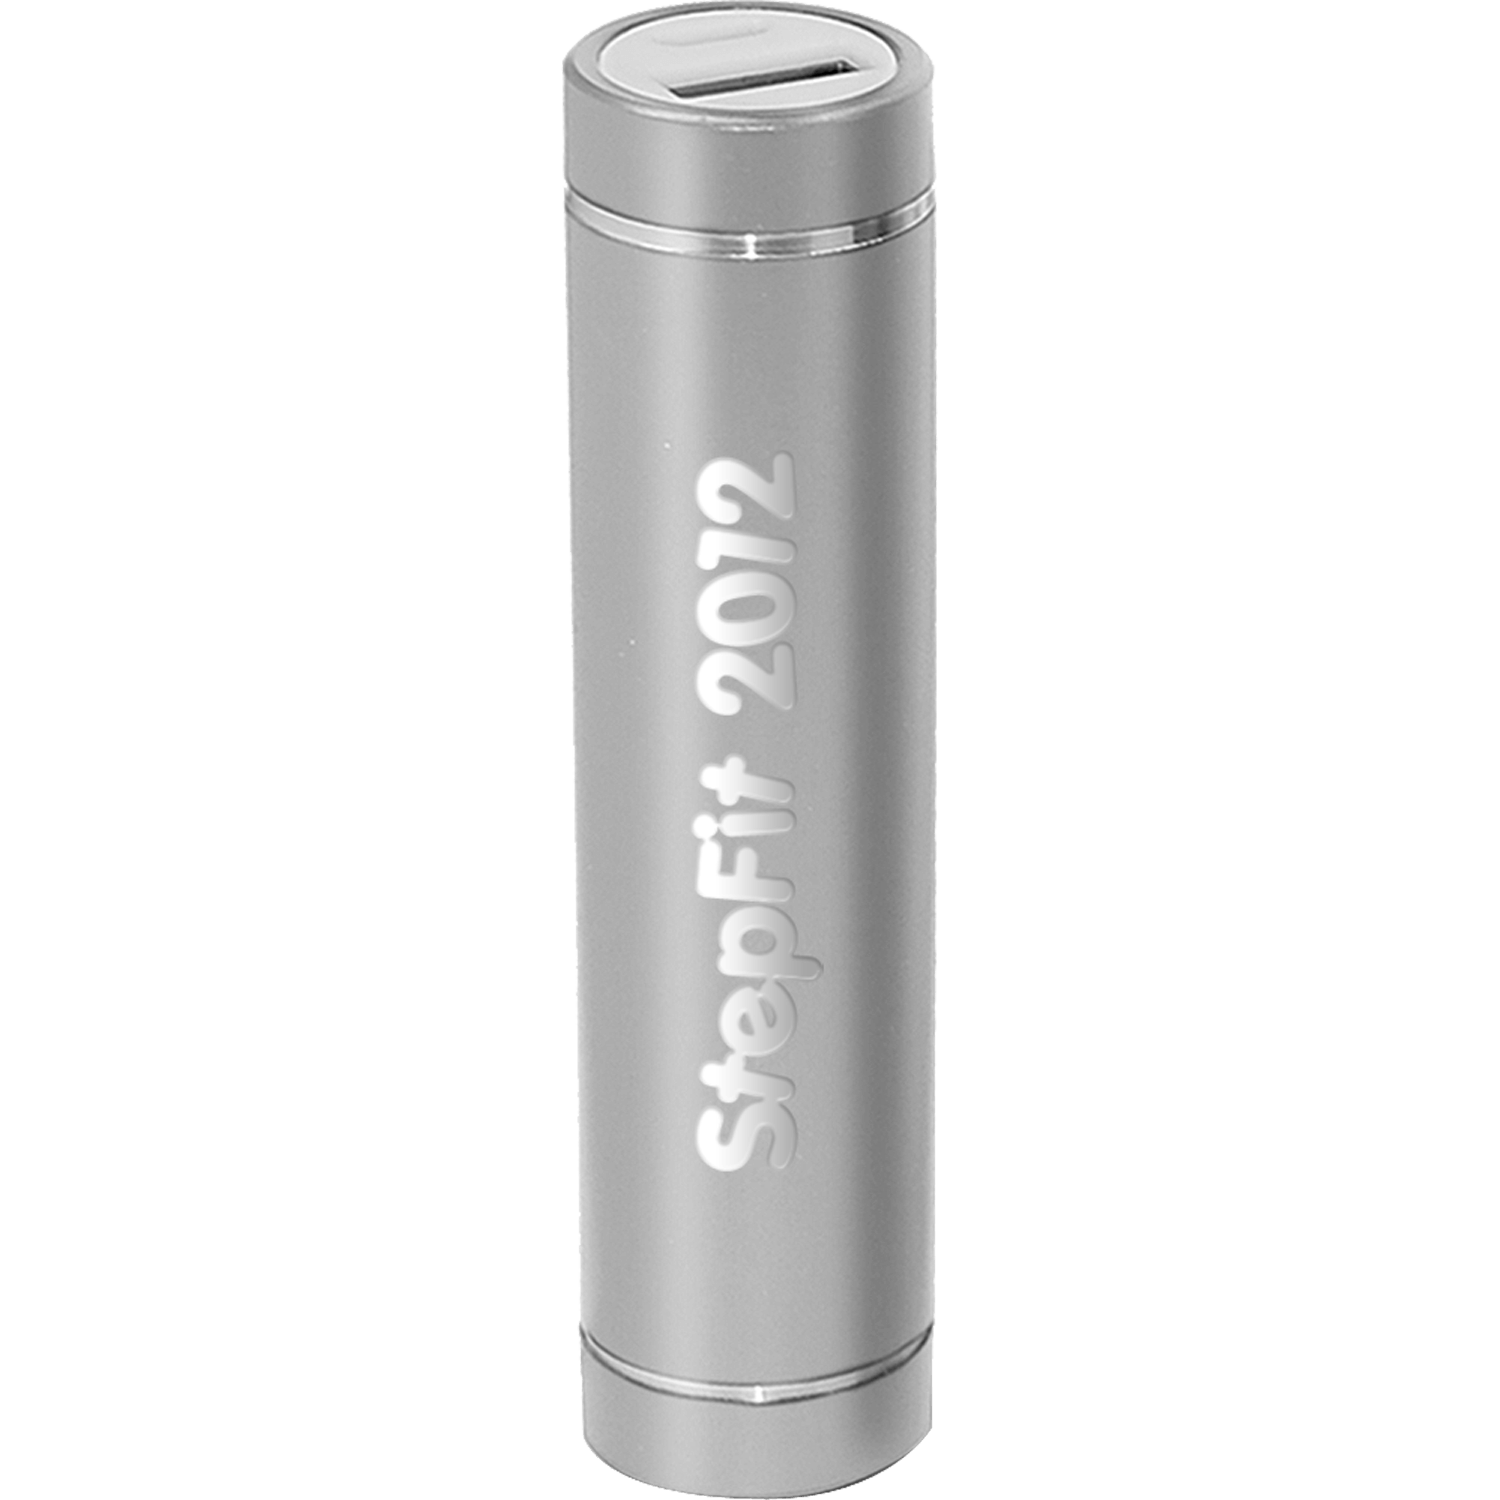 Engraved Cylinder Power Bank Charger